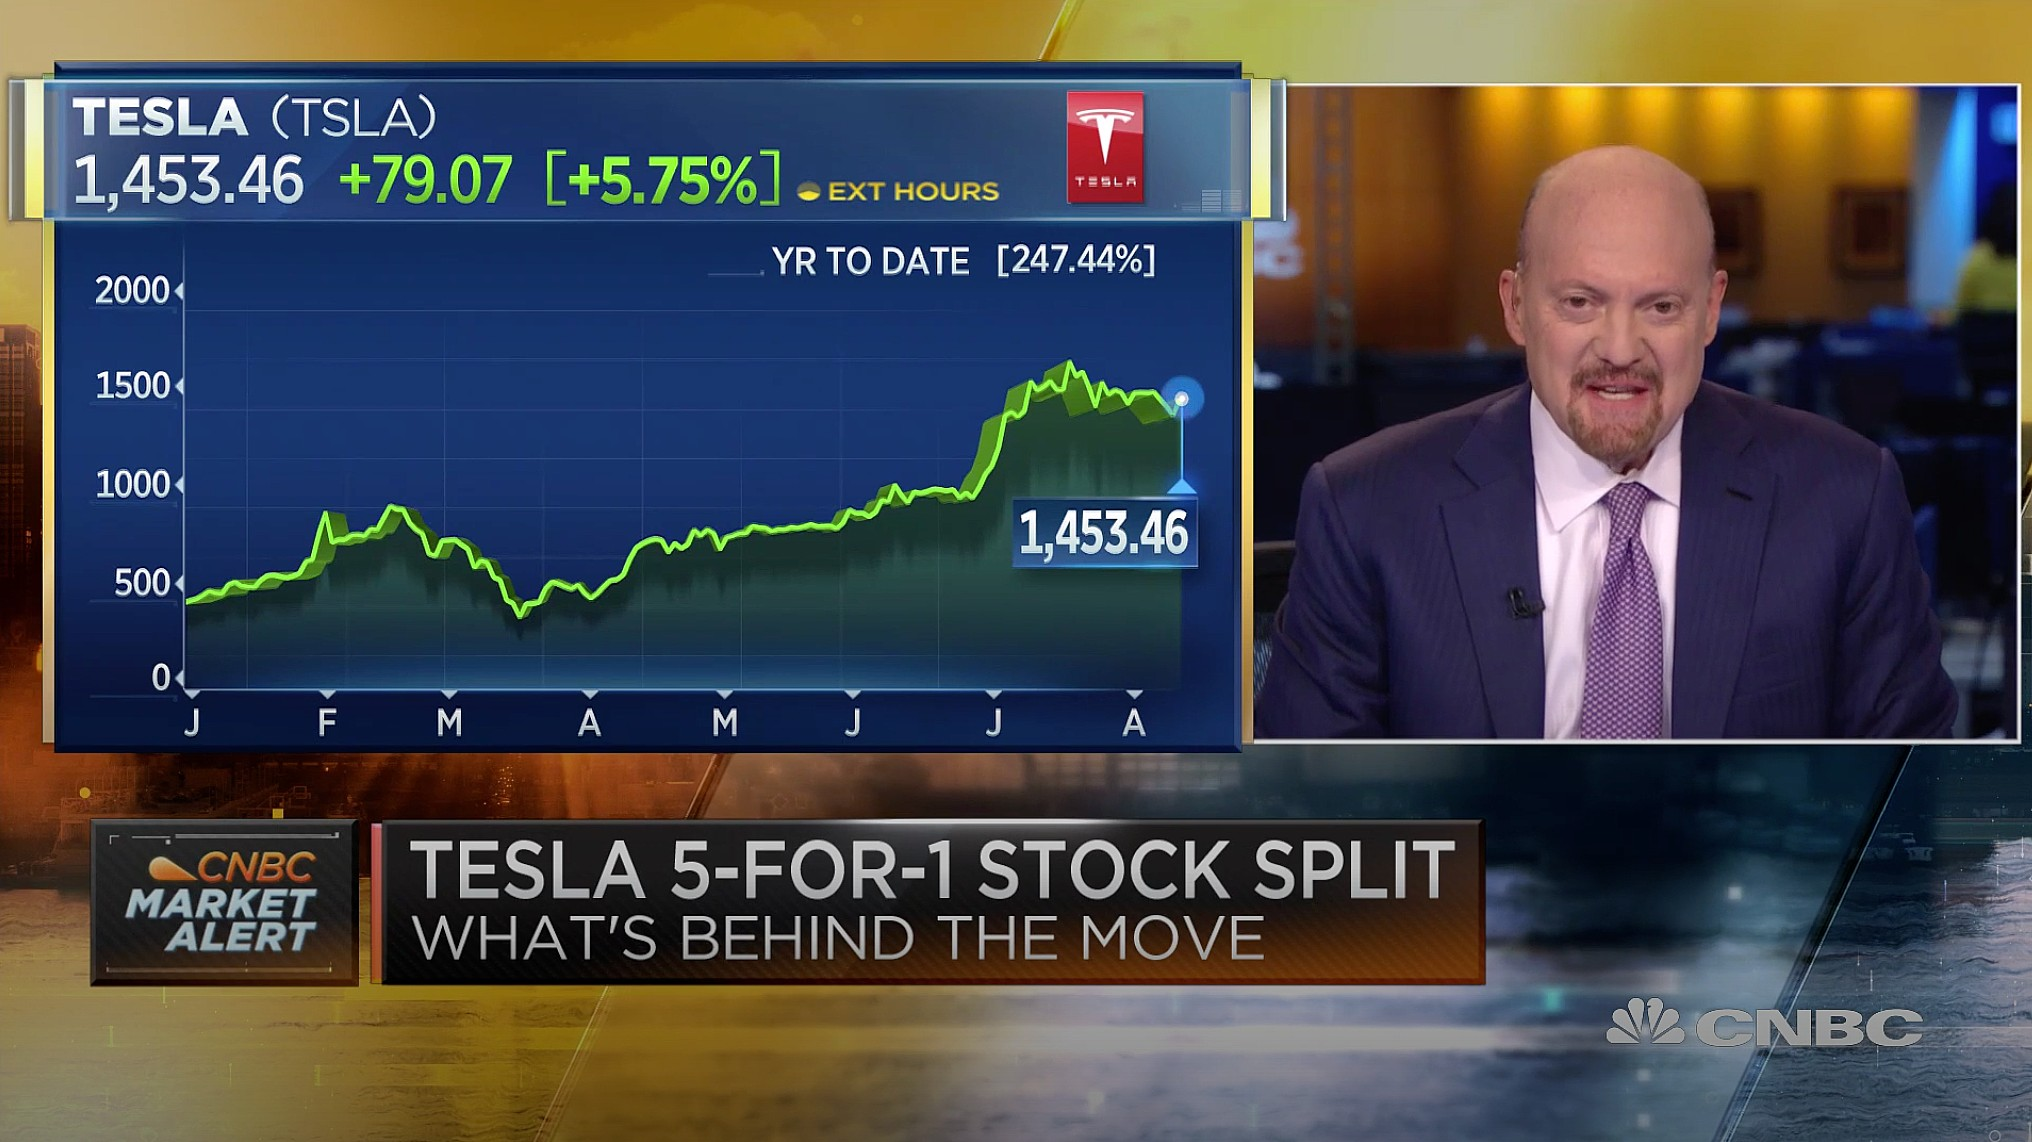 tesla-tsla-jim-cramer-stock-split